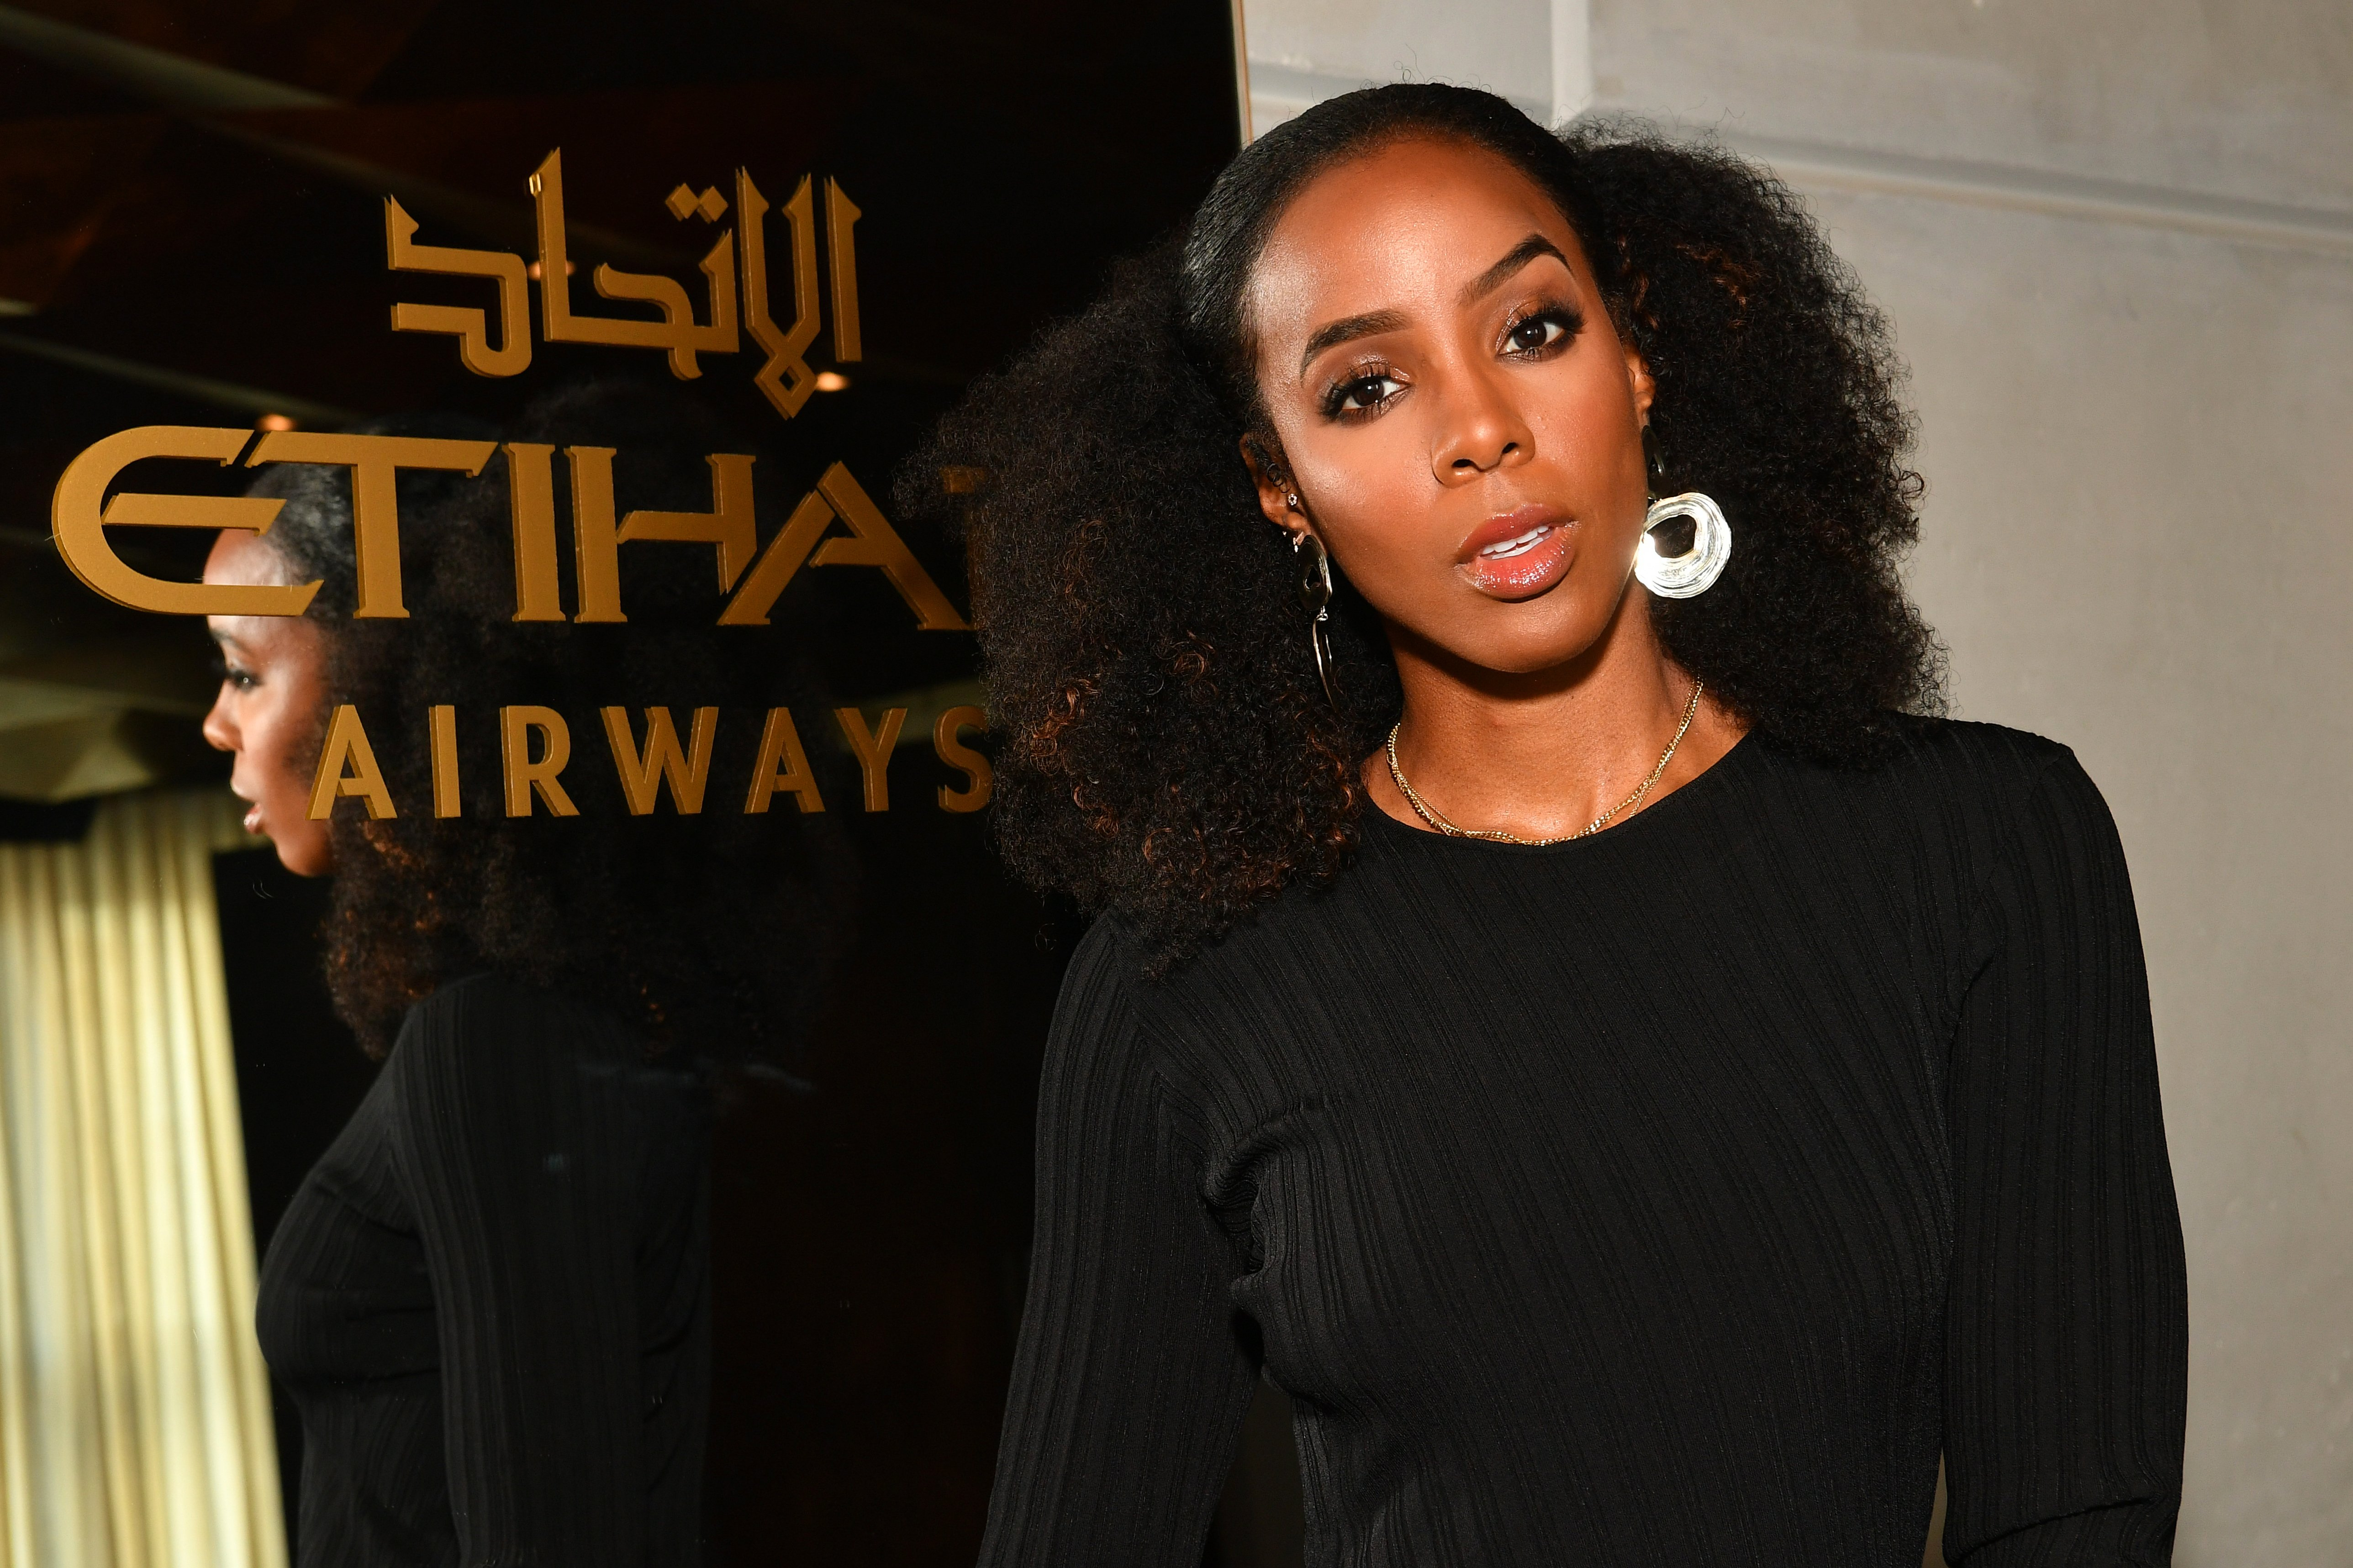 Kelly Rowland in the Etihad Airways VIP Lounge at NYFW at Spring Studios on February 14, 2018 in New York City.|Source: Getty Images